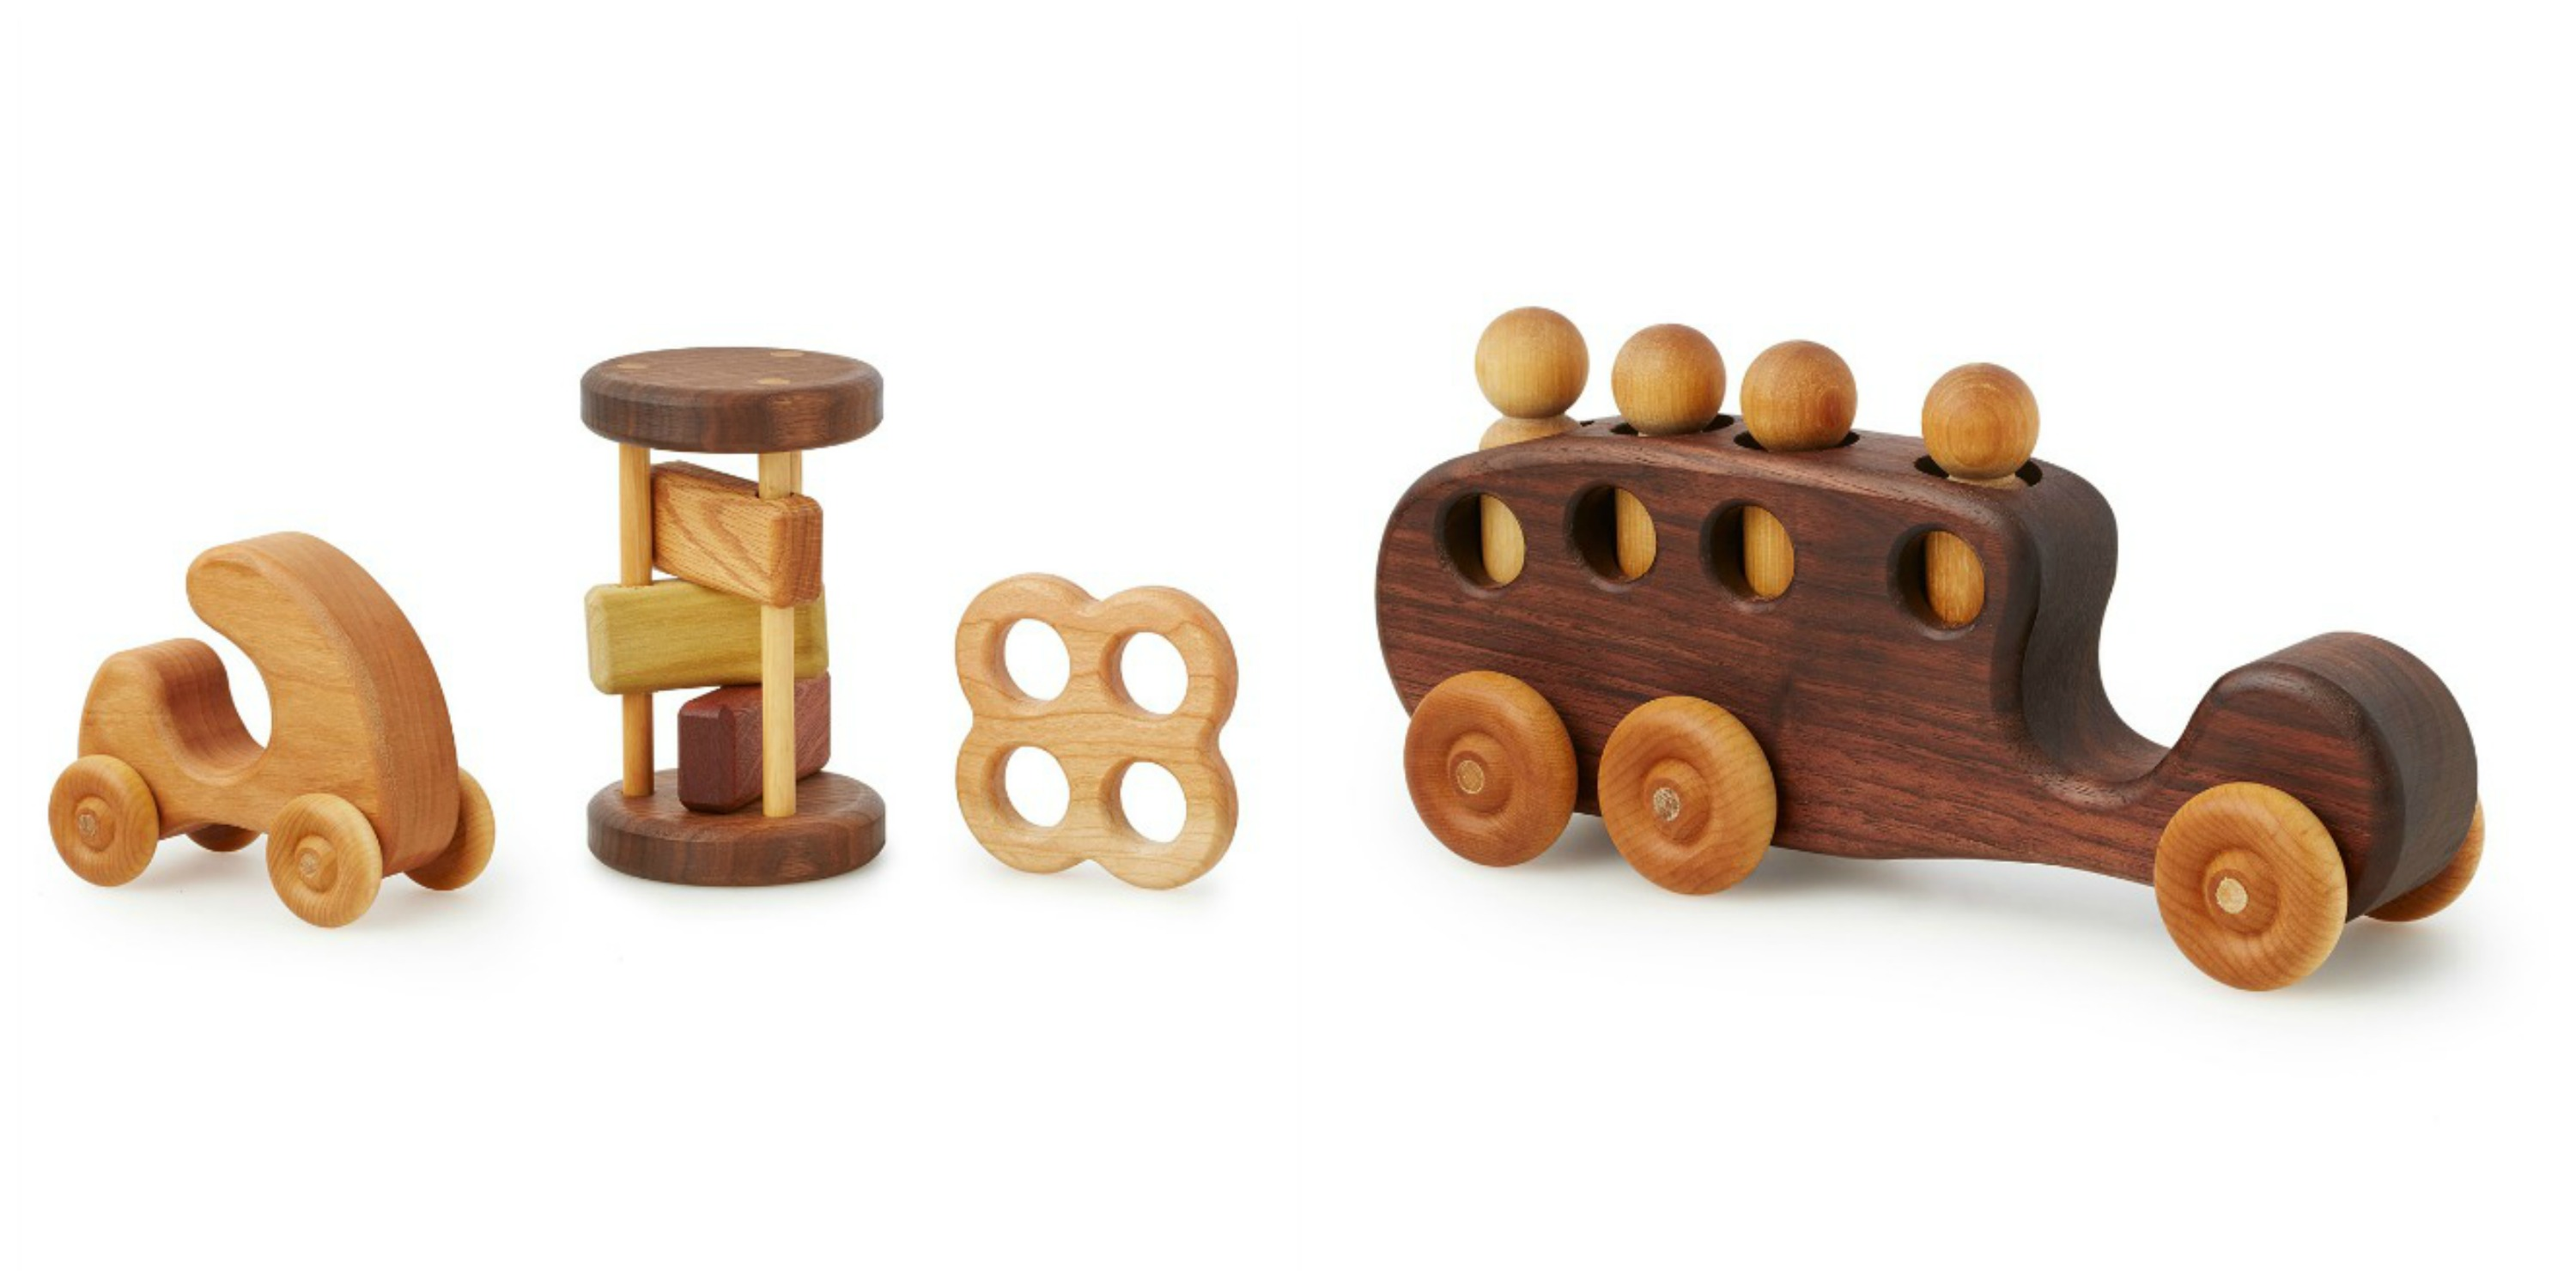 The Wooden Baby Shower Gift Set, and Wooden Bus